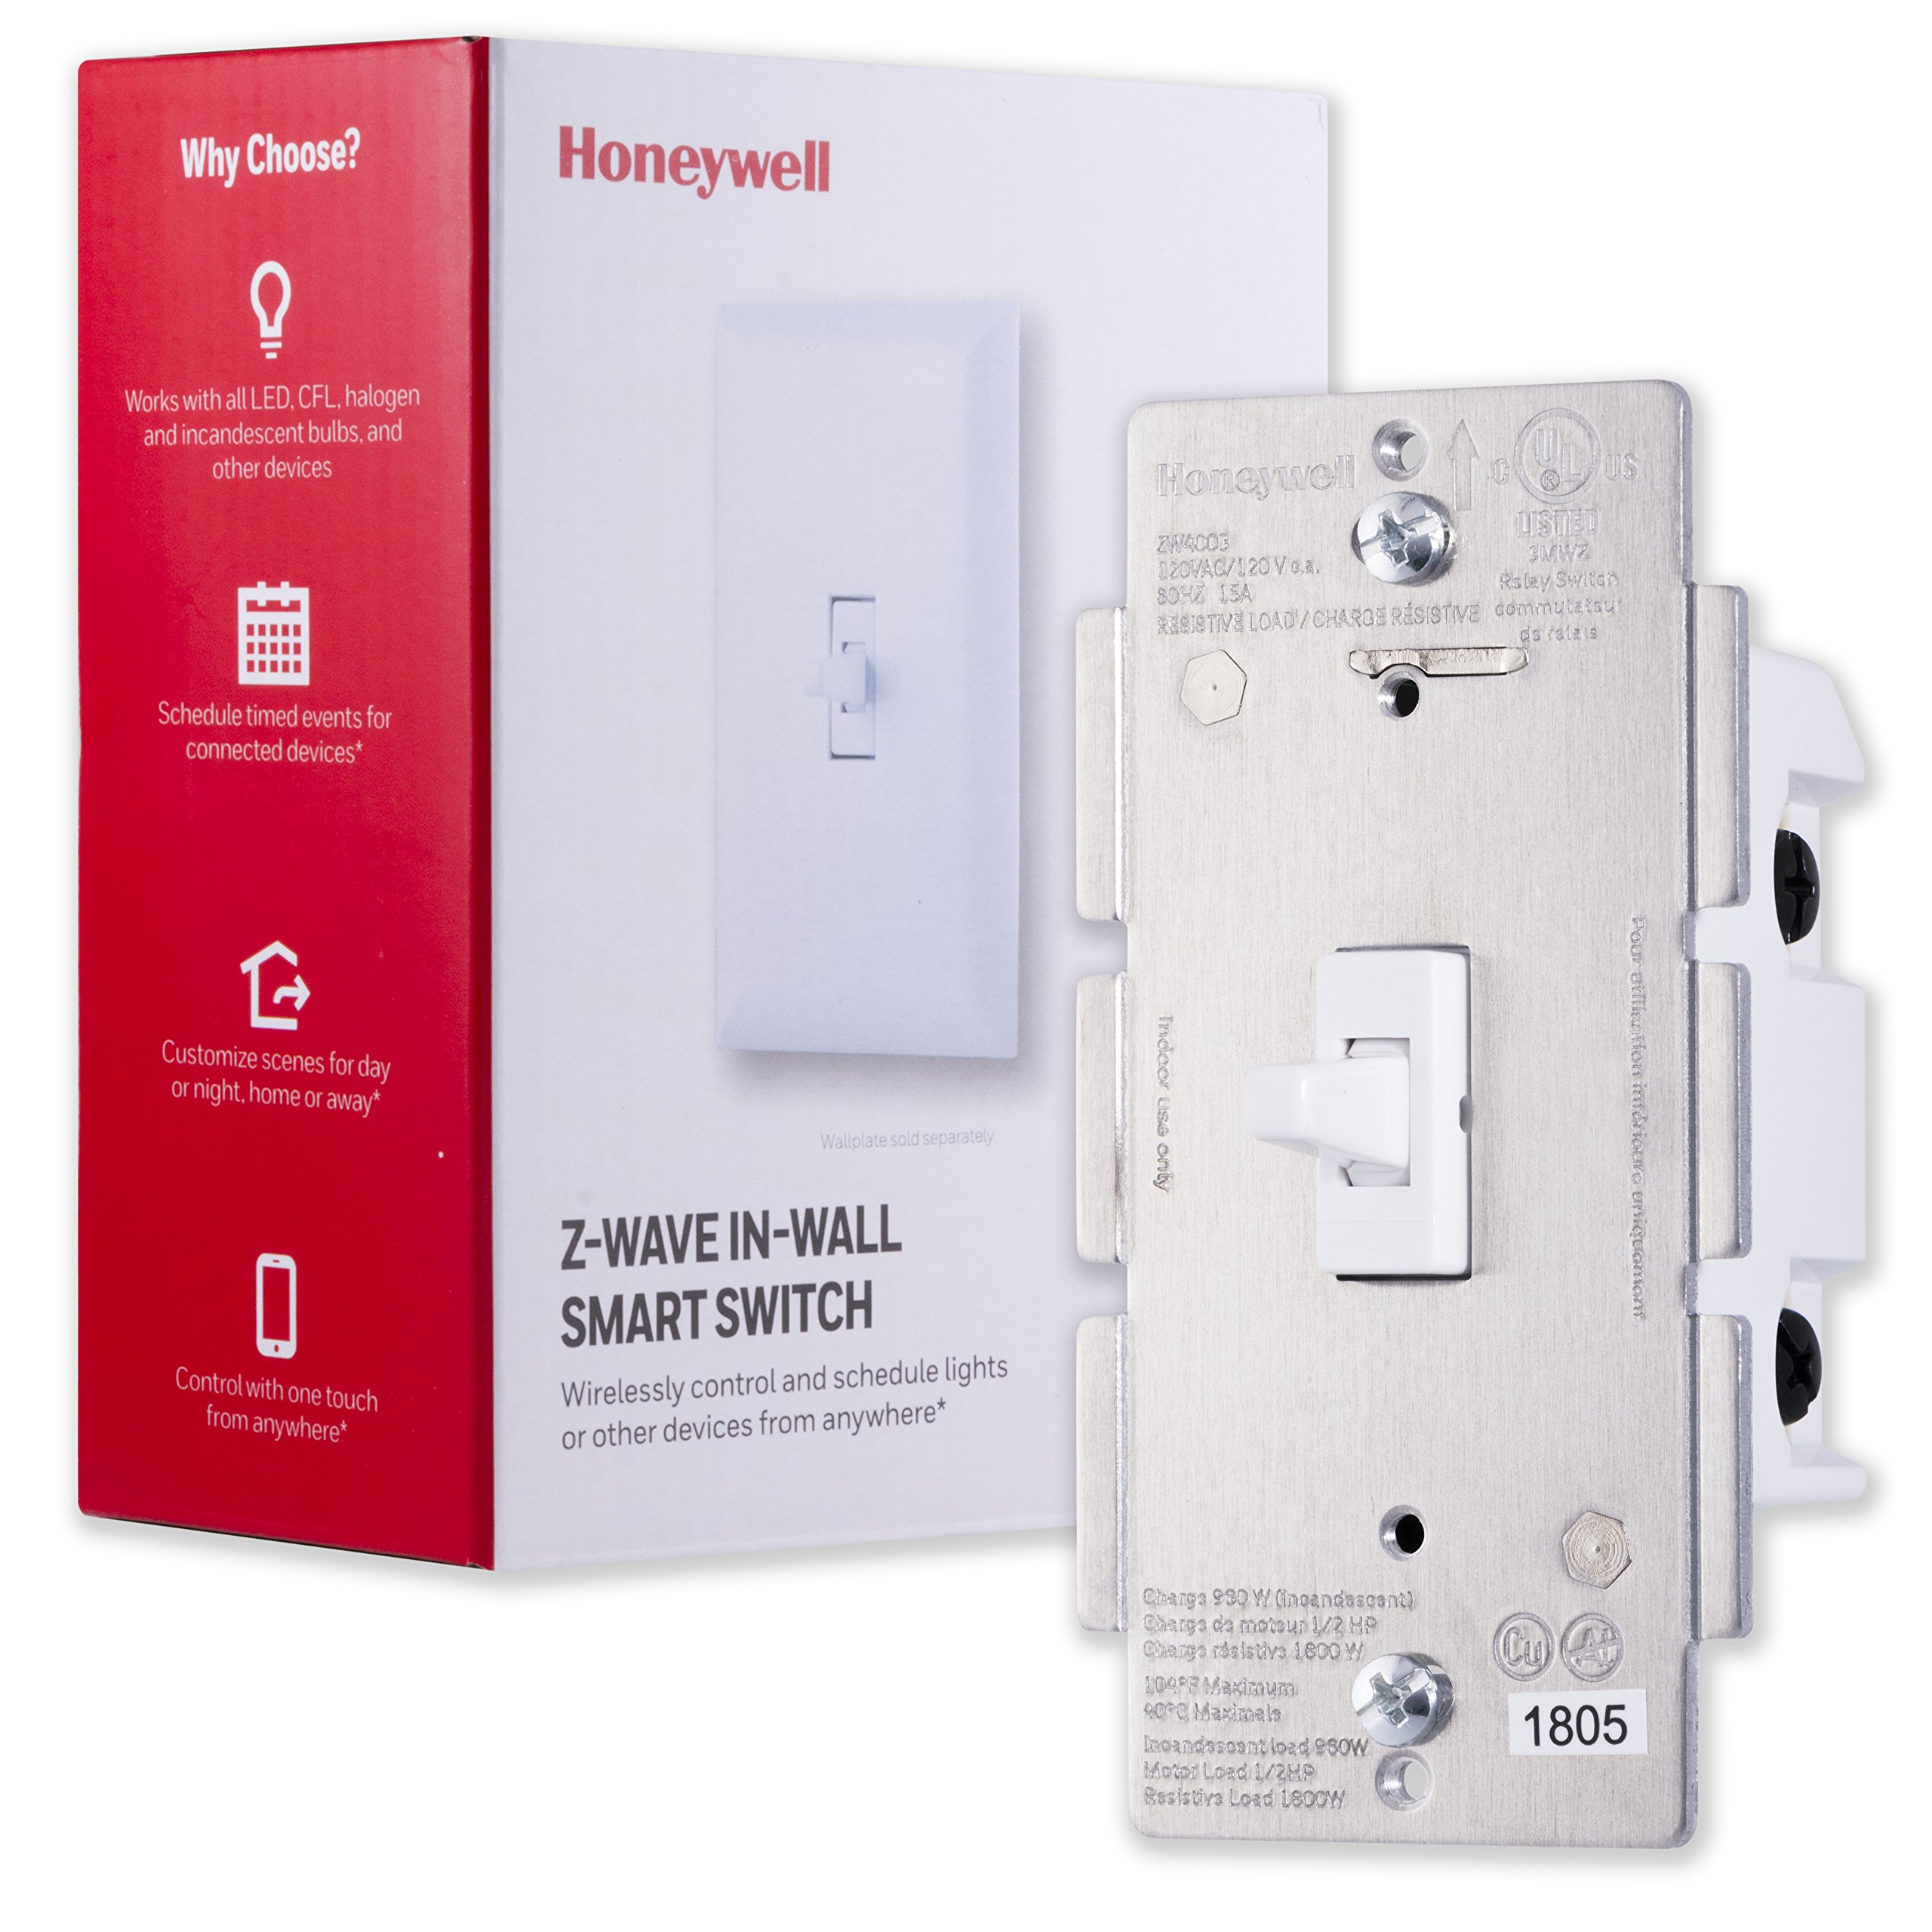 Honeywell Z-Wave Plus On/Off Smart Light Switch, In-Wall Toggle |Built-In Repeater  Range Extender | Requires Neutral Wire | ZWave Hub Required - SmartThings, Wink, Alexa Compatible, 39354